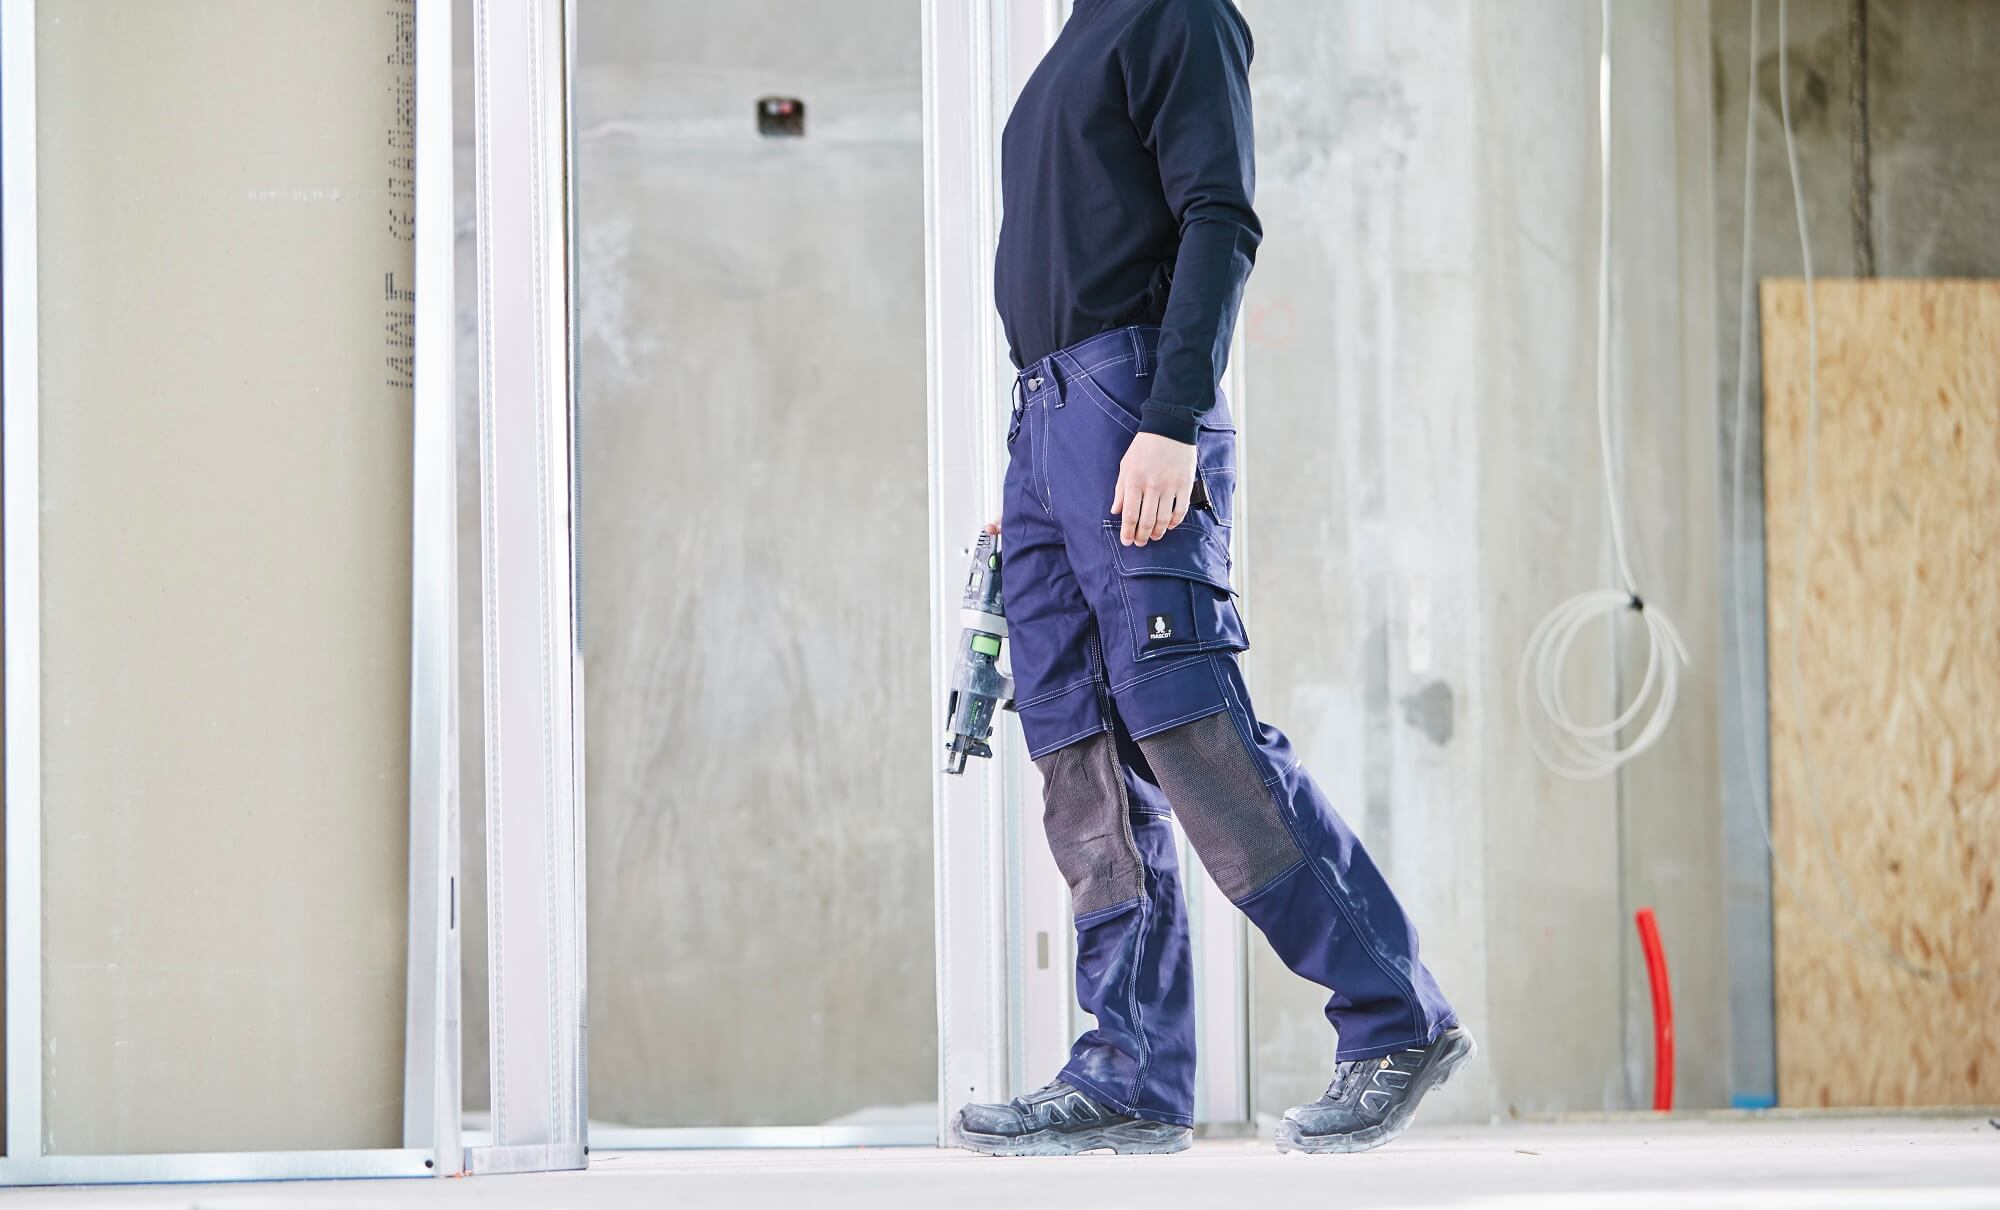 Work Trousers & T-shirt, long-sleeved - Navy - Craftmen and light building